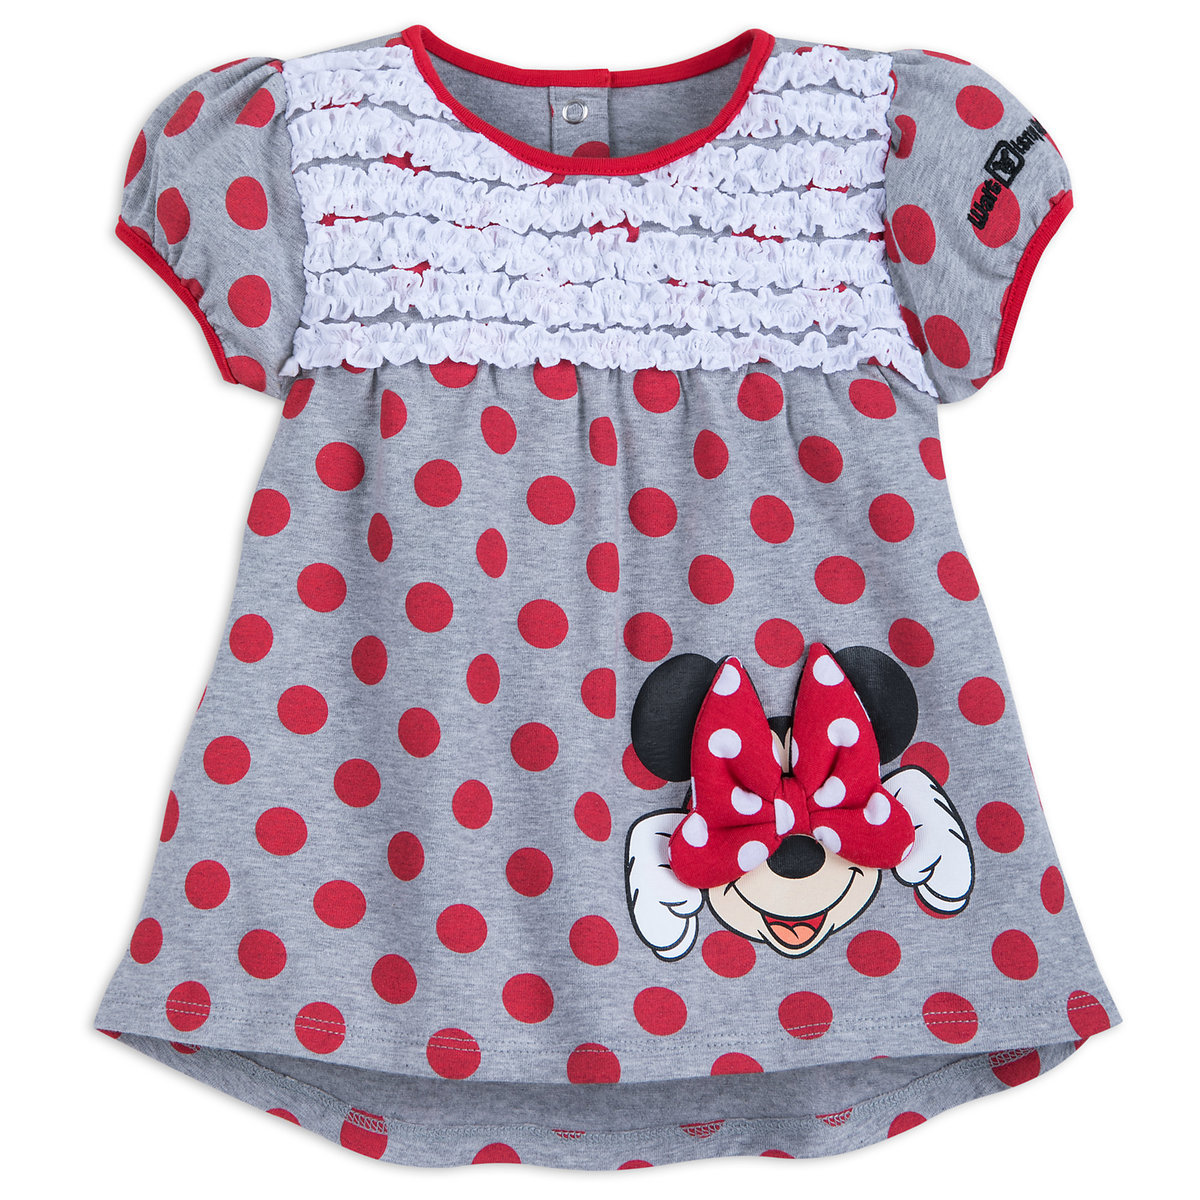 527a53730 Minnie Mouse Red Dot Top and Leggings Set for Girls - Walt Disney World